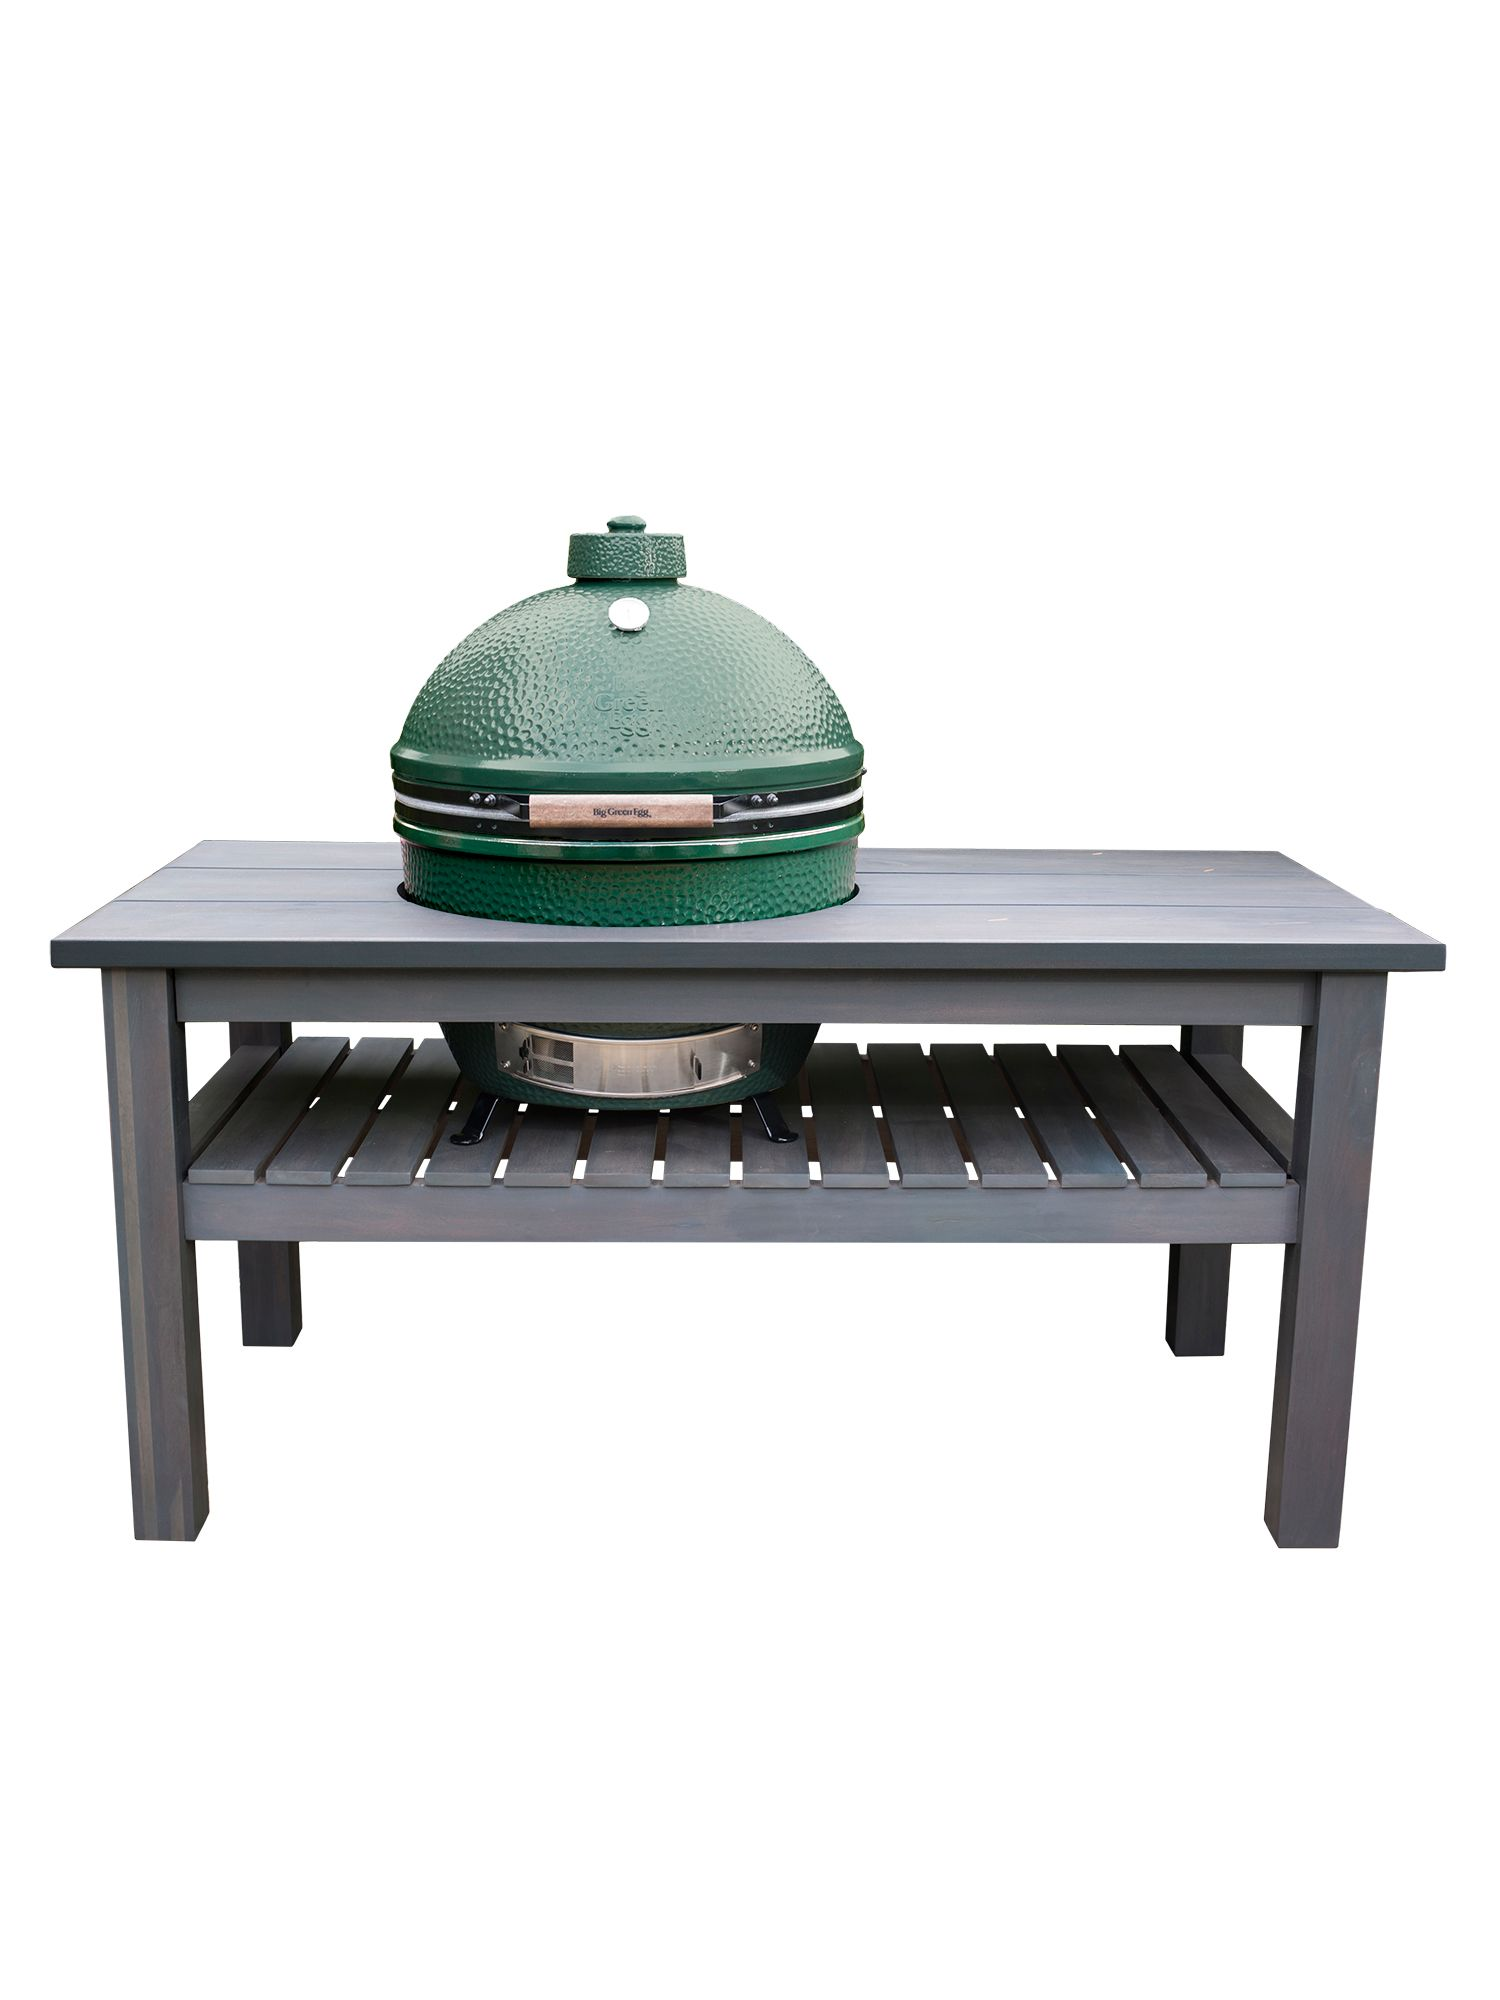 Image of Big Green Egg X large barbecue in slate grey table